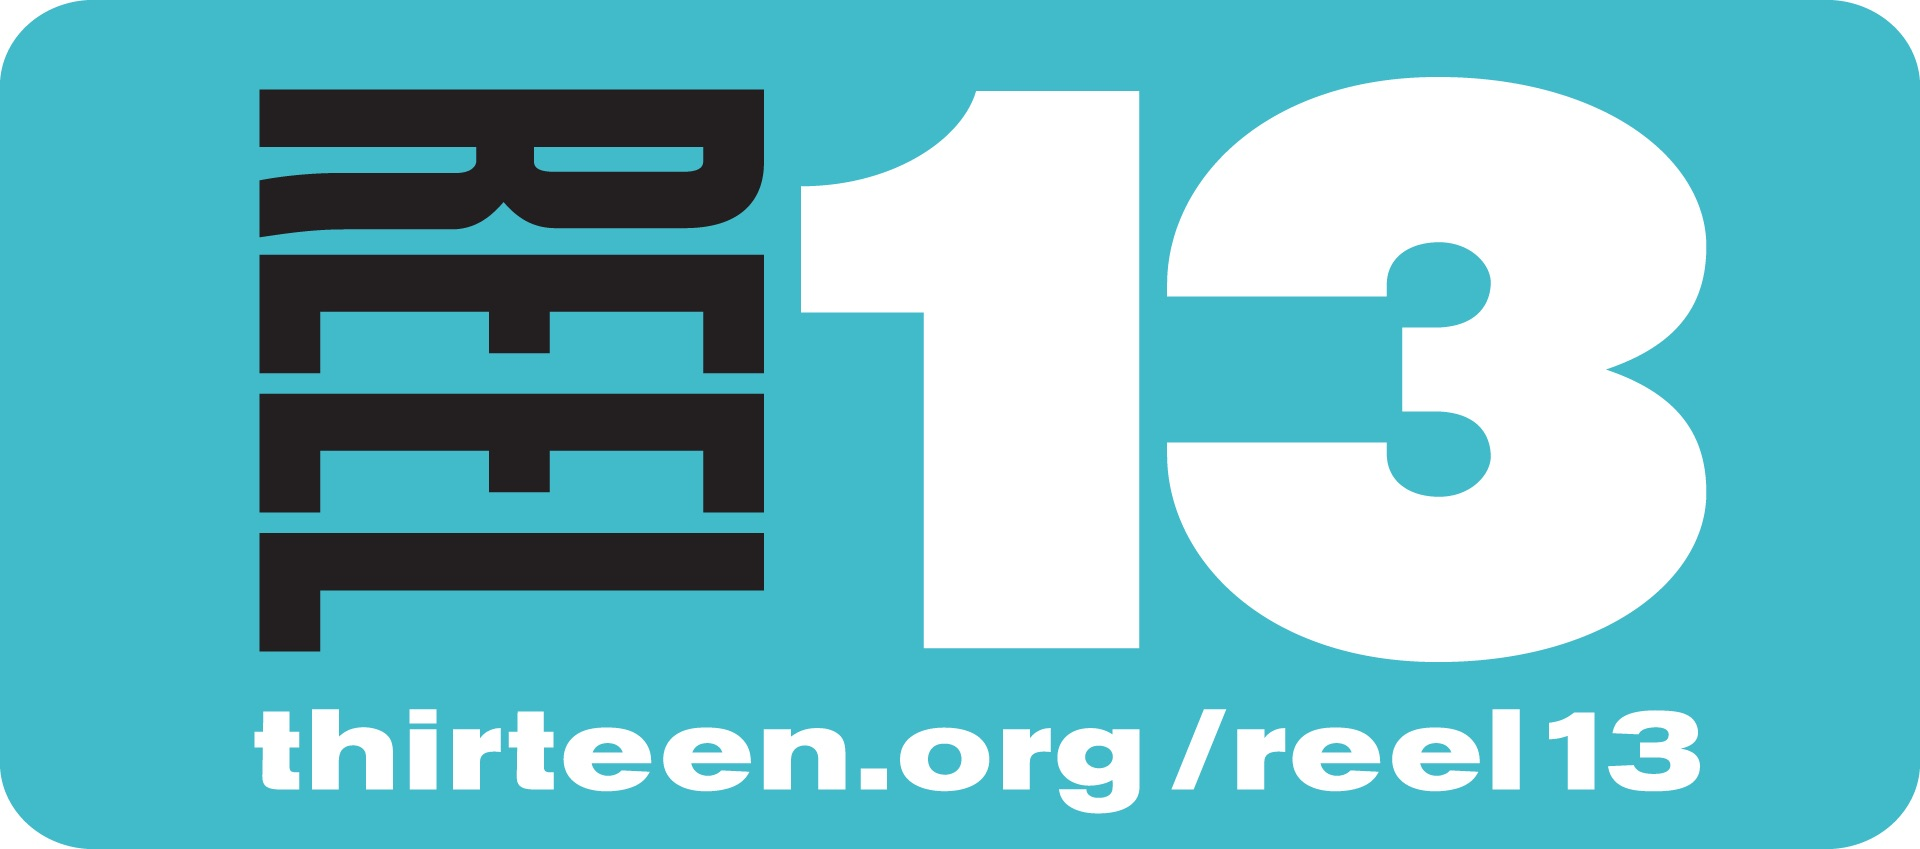 Logo for Reel 13 and its website thirteen.org/reel13